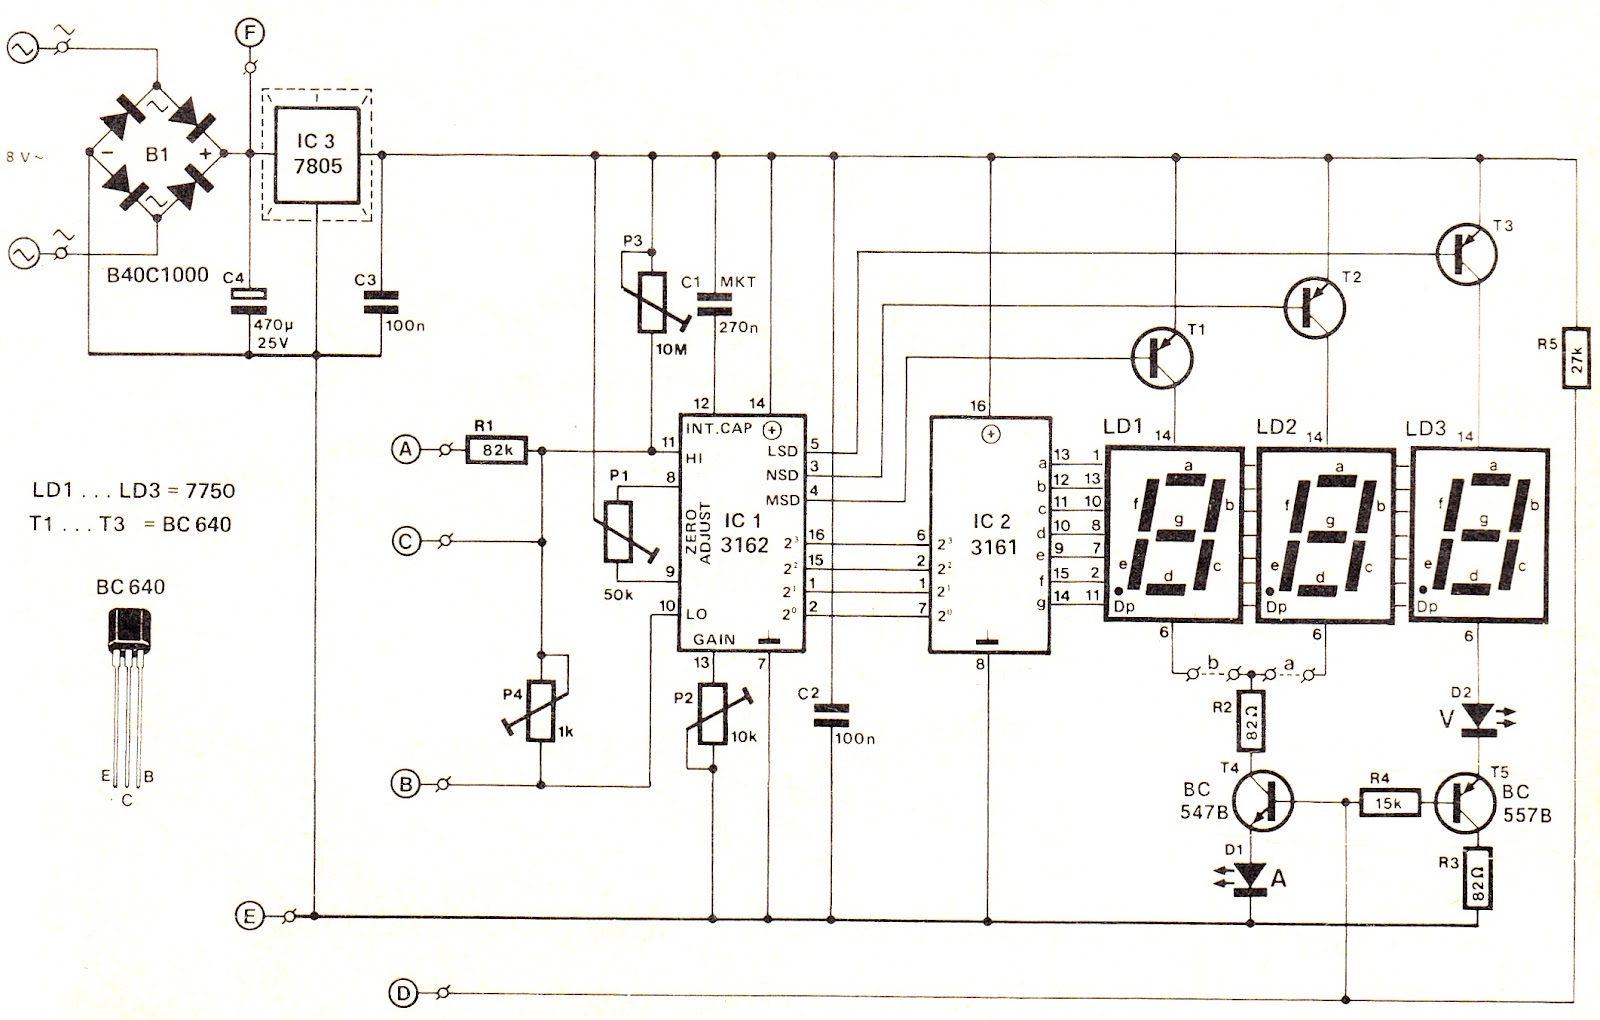 Digital Voltmeter And Ammeter Circuit Module L24854 on simple home wiring diagram